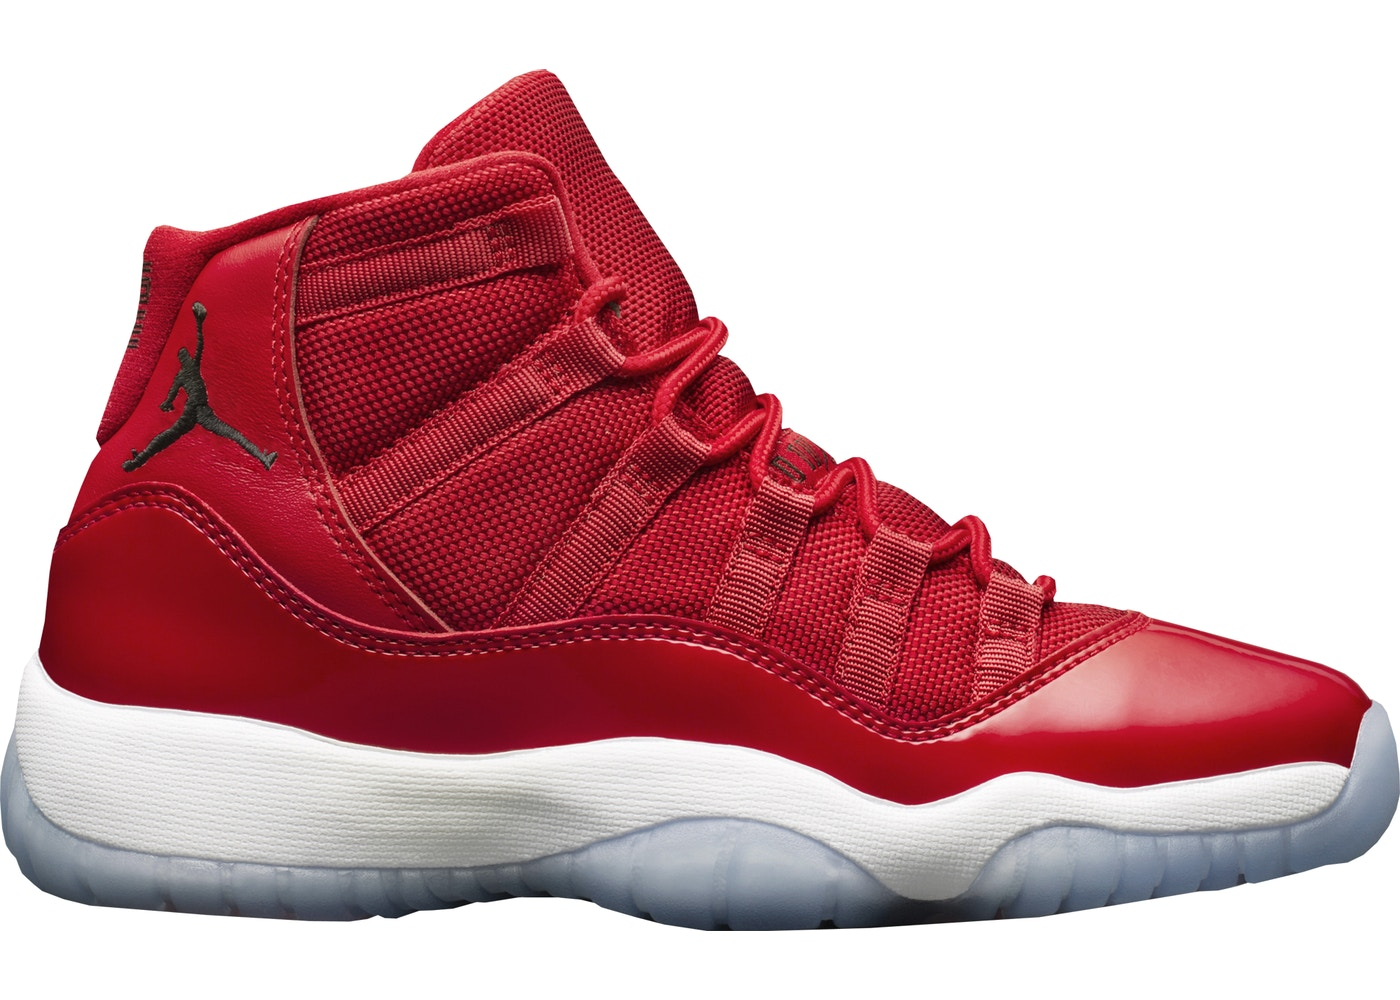 1f572f19f704 Jordan 11 Retro Win Like 96 (GS) - 378038-623